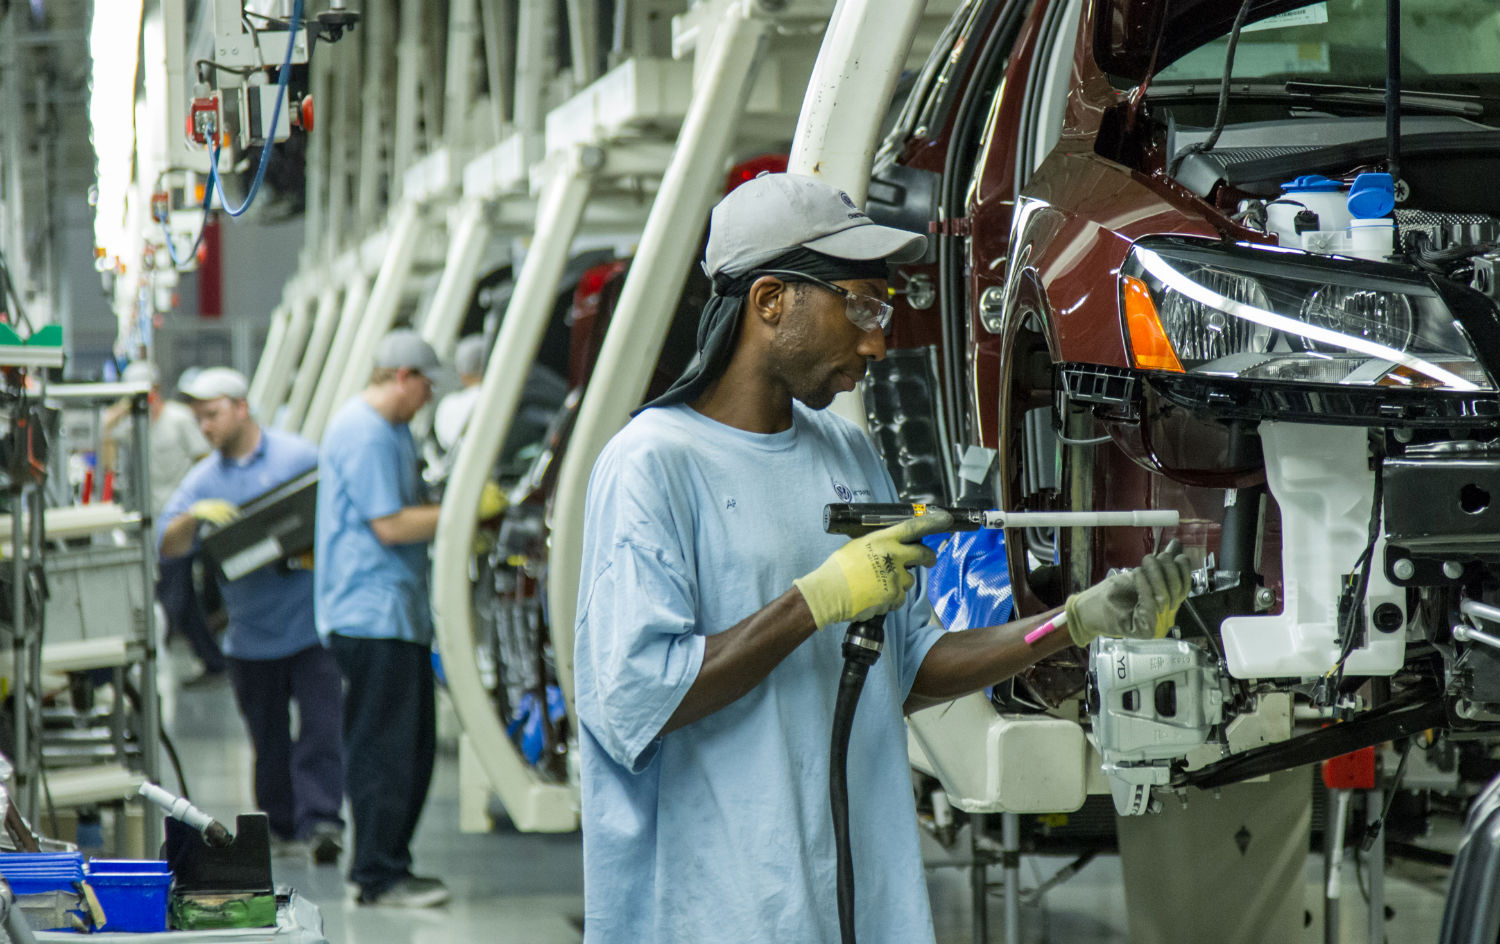 pIn-this-June-12-2013-photo-workers-assemble-Volkswagen-Passat-sedans-at-the-German-automaker39s-plant-in-Chattanooga-Tennessee.-AP-PhotoErik-Schelzigp